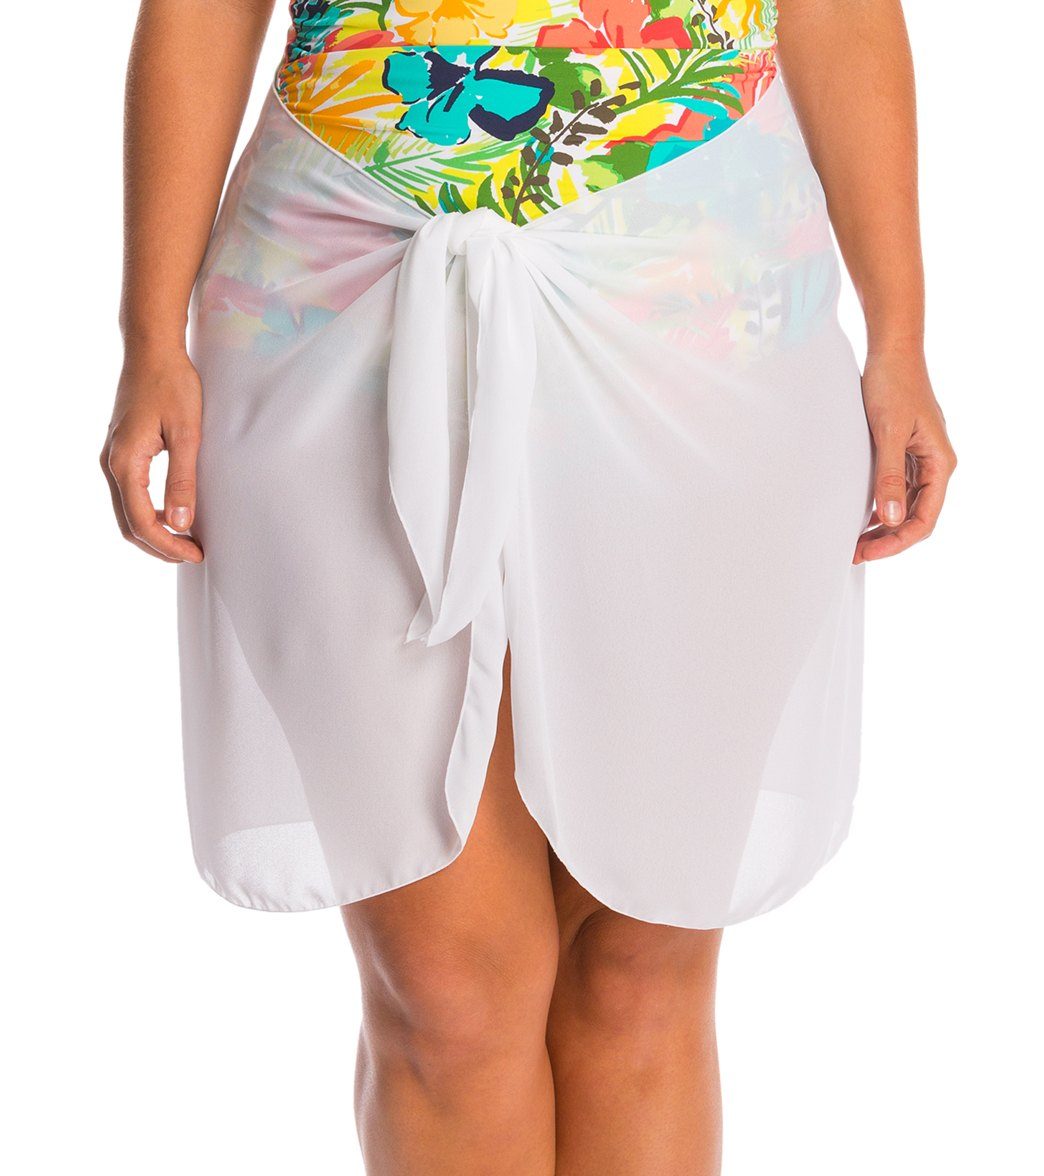 01b22ac743 Dotti Plus Size Sarong, So Right Short Pareo at SwimOutlet.com